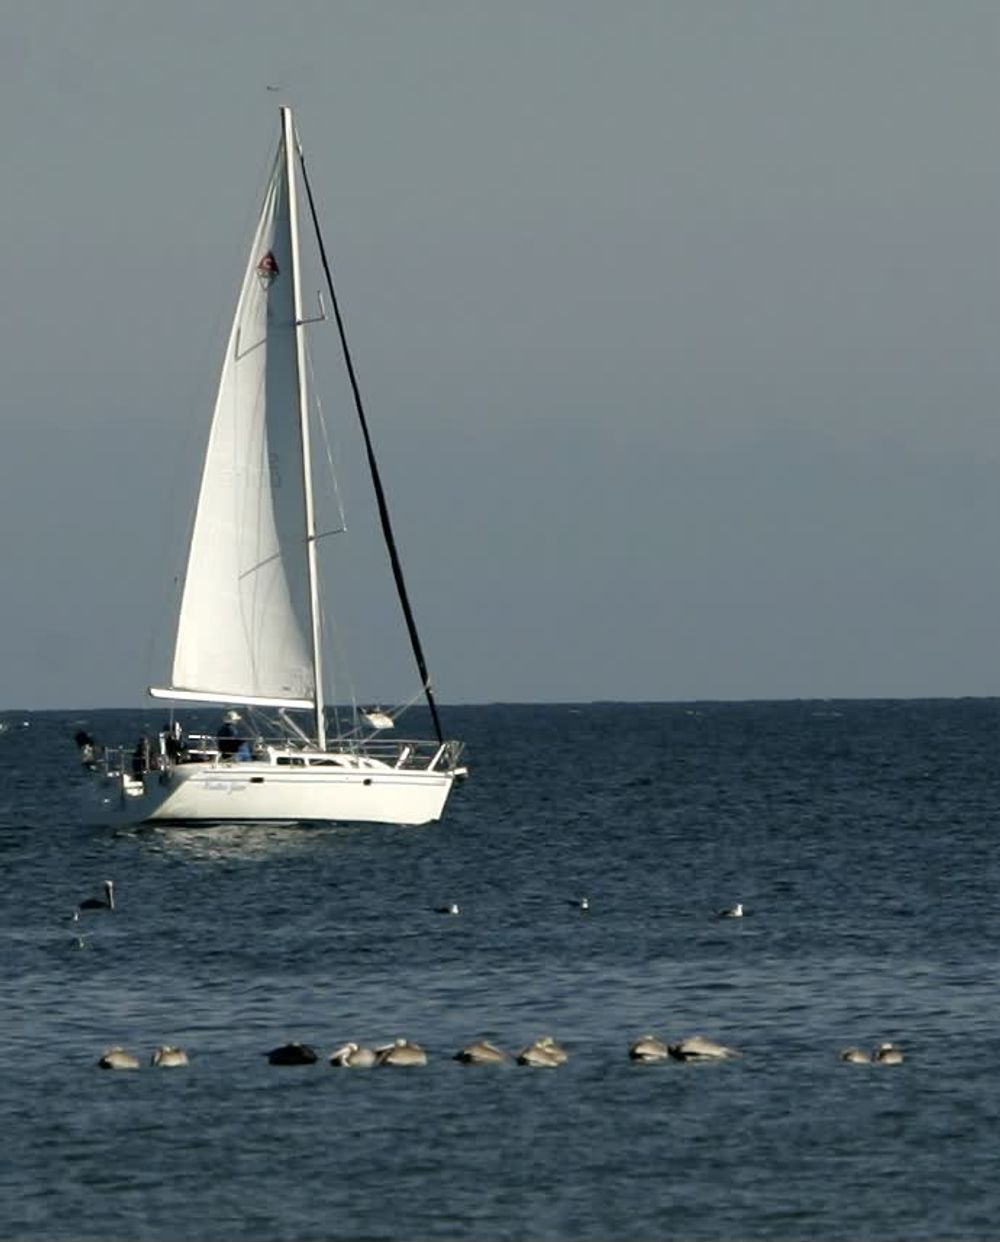 title: Sailing at Santa Barbara Beach in California